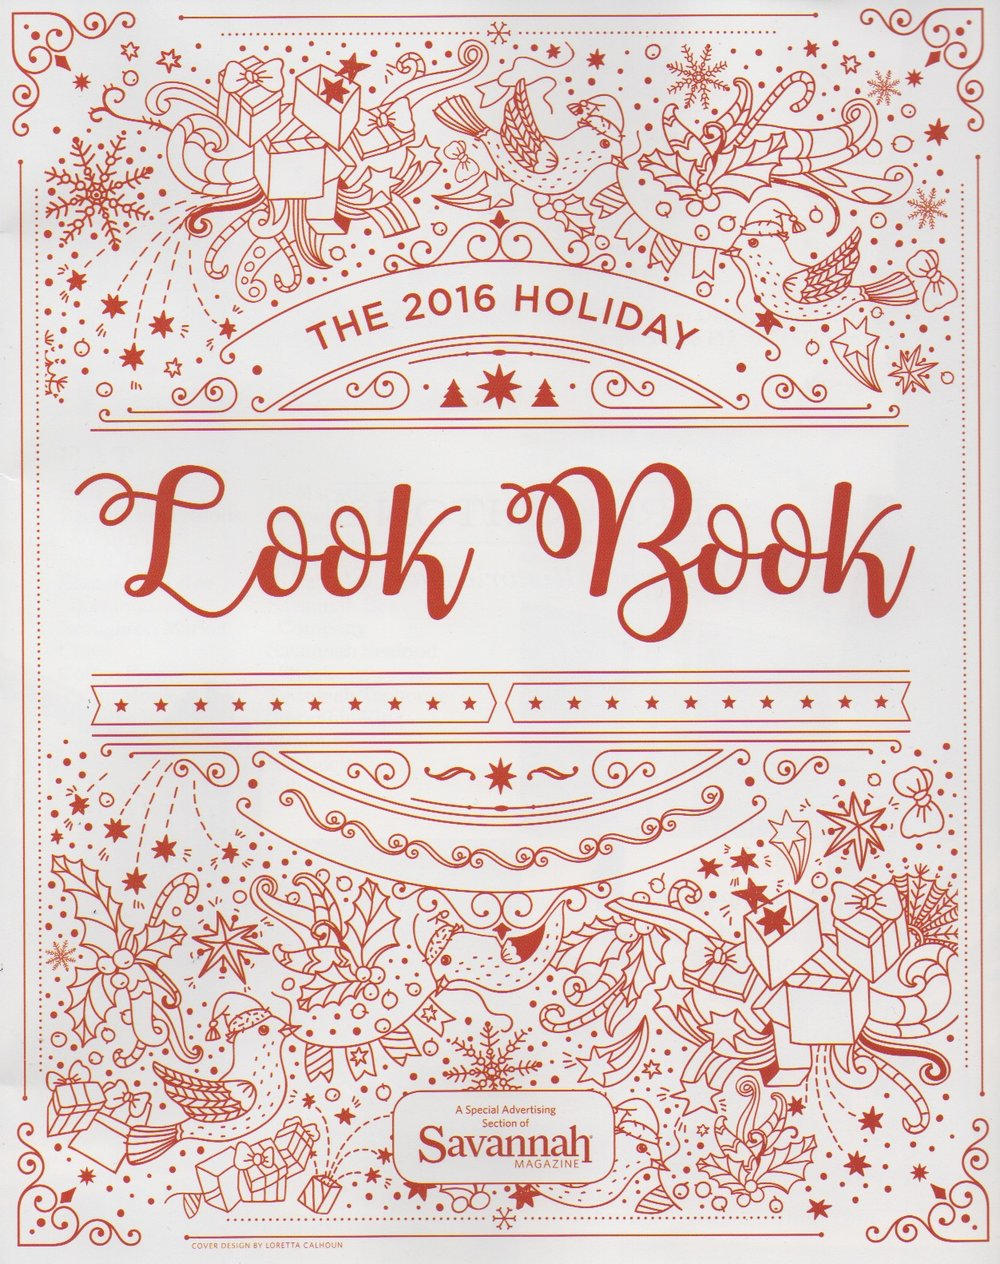 Savannah Magazine Holiday Look Book December 2016